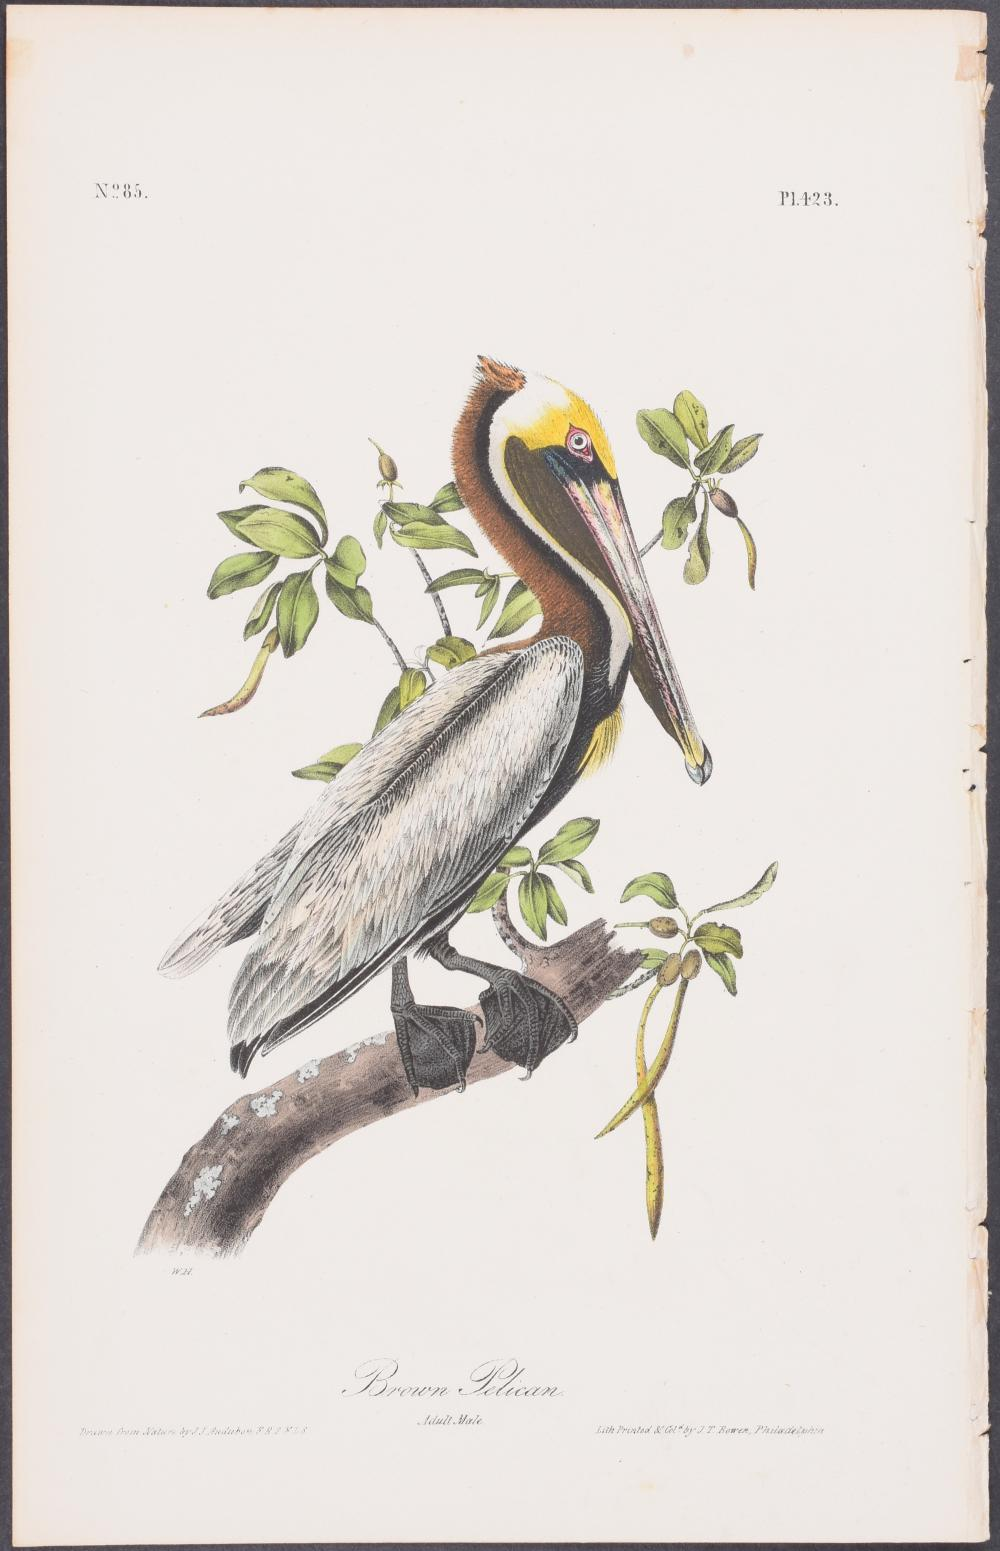 Lot 11115: Audubon - Brown Pelican. 423